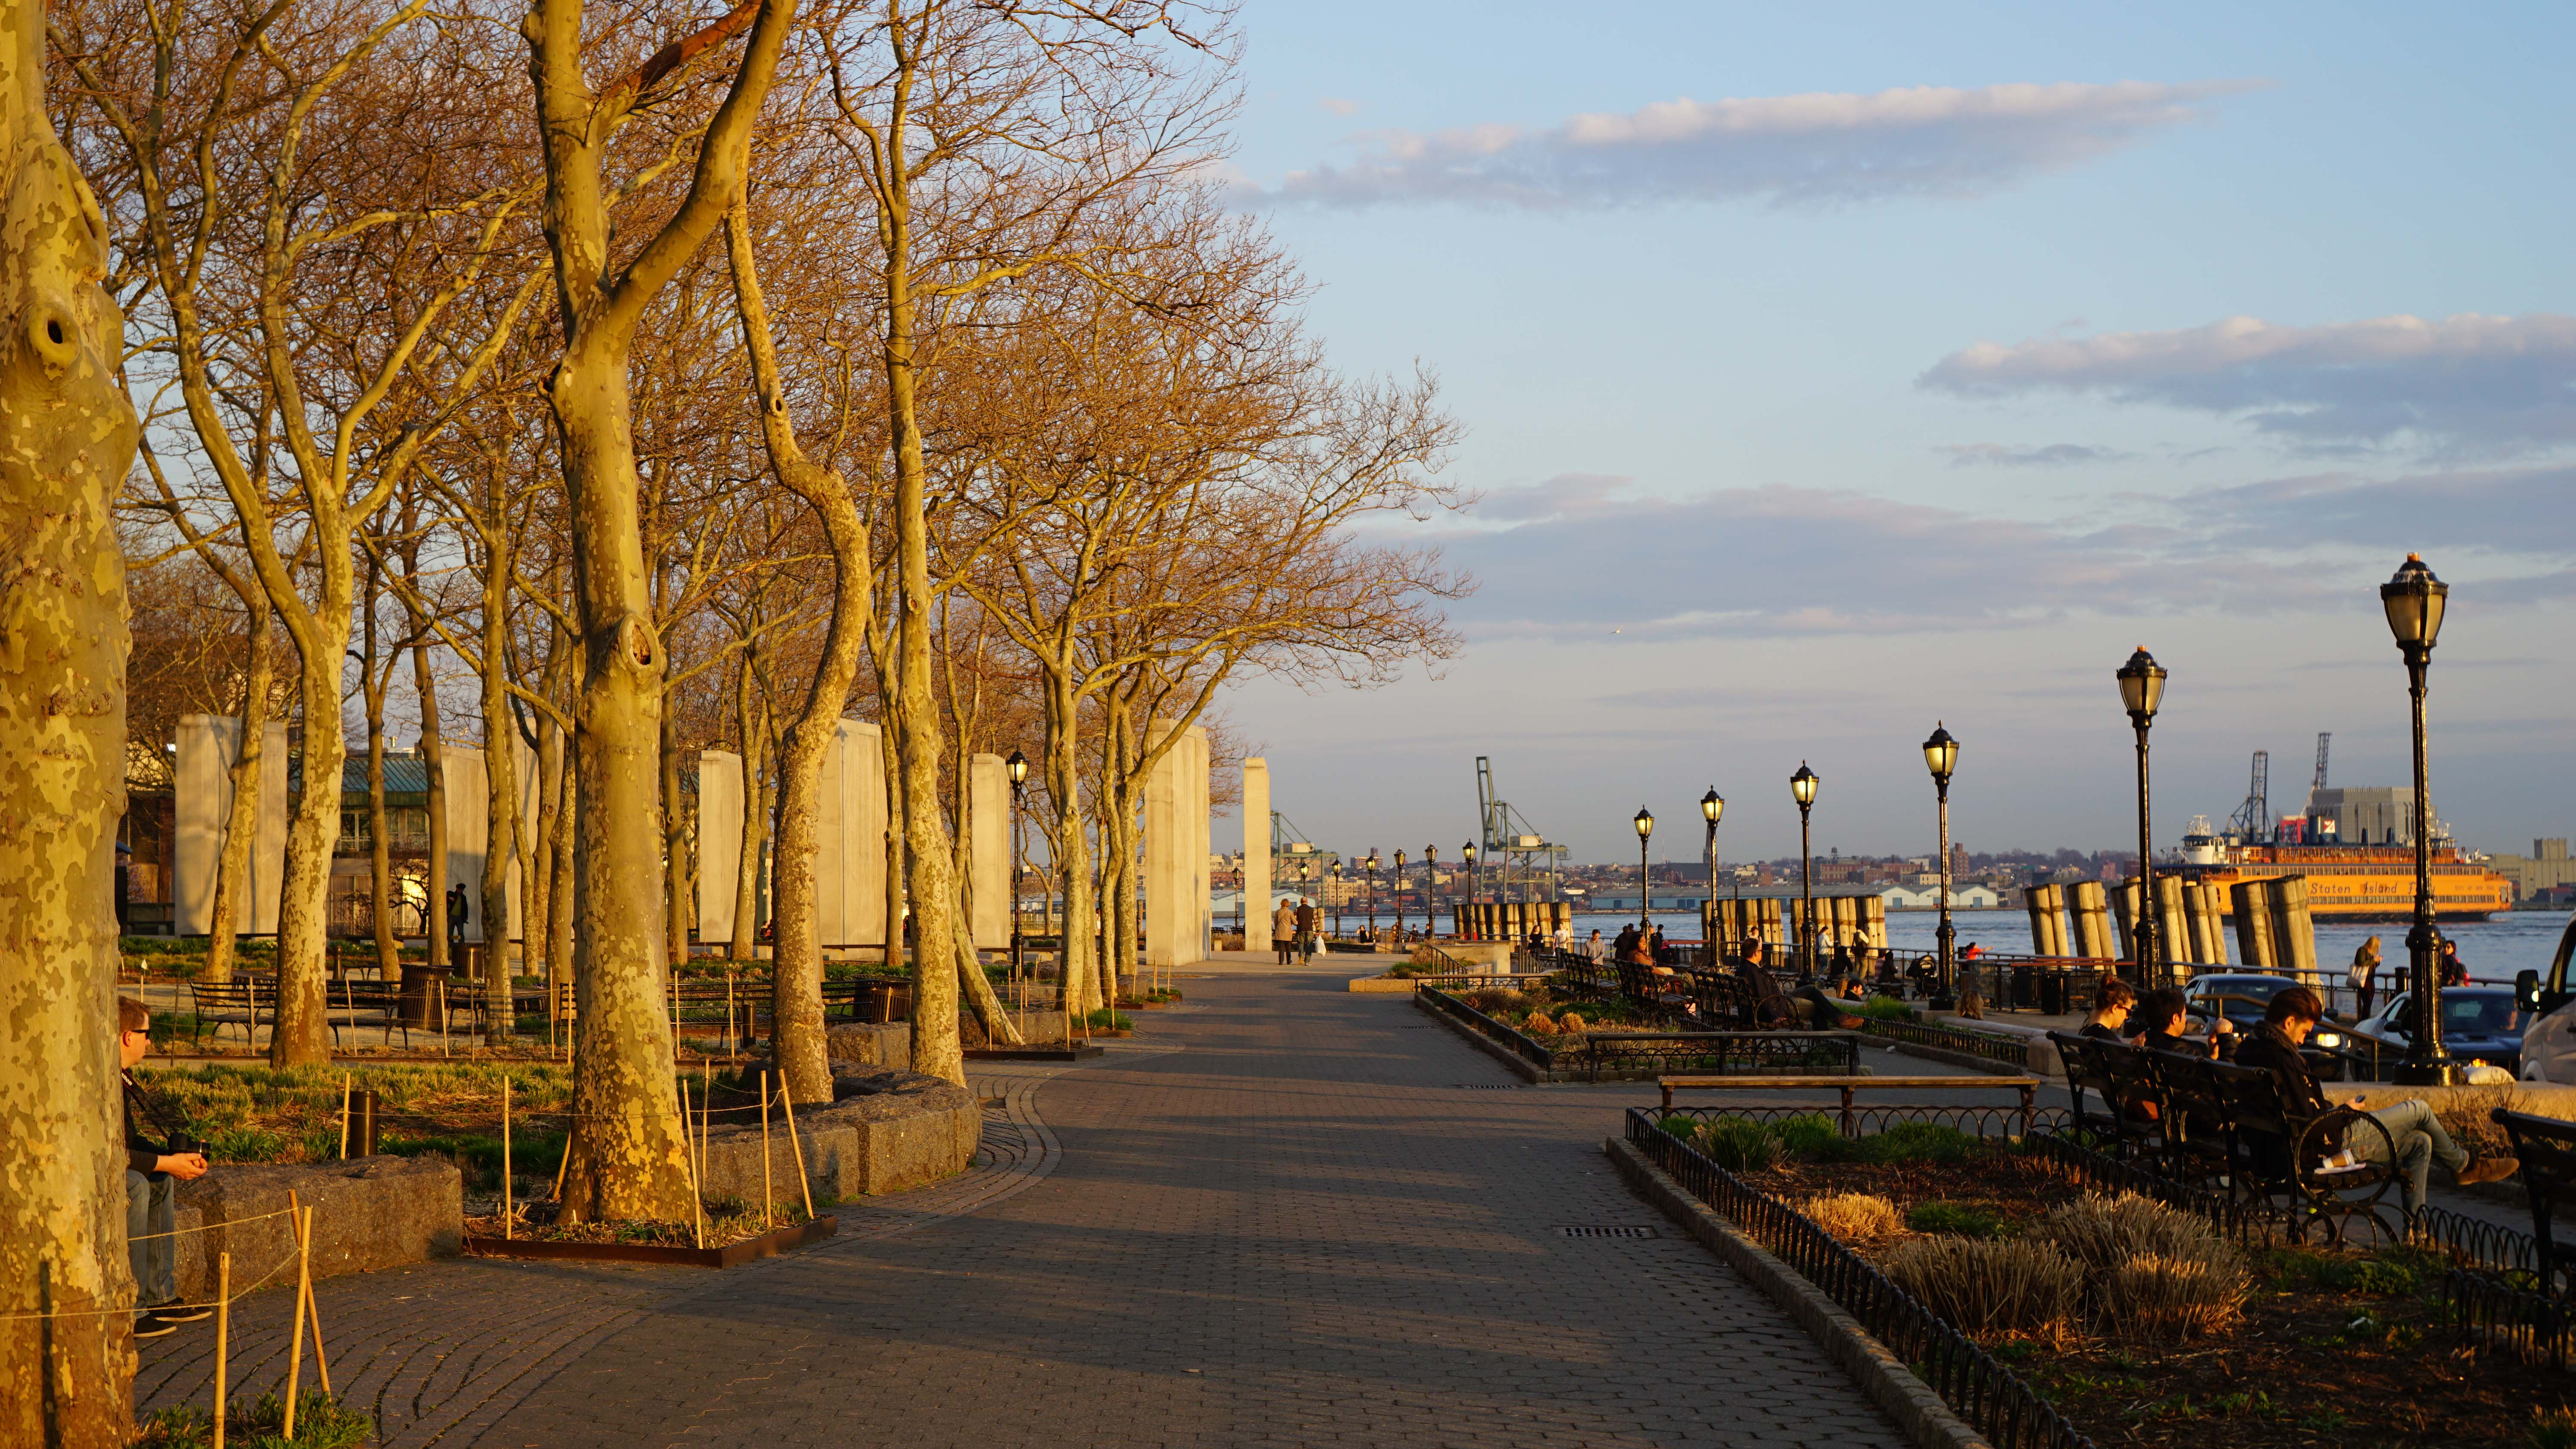 Battery Park Conservancy open 9